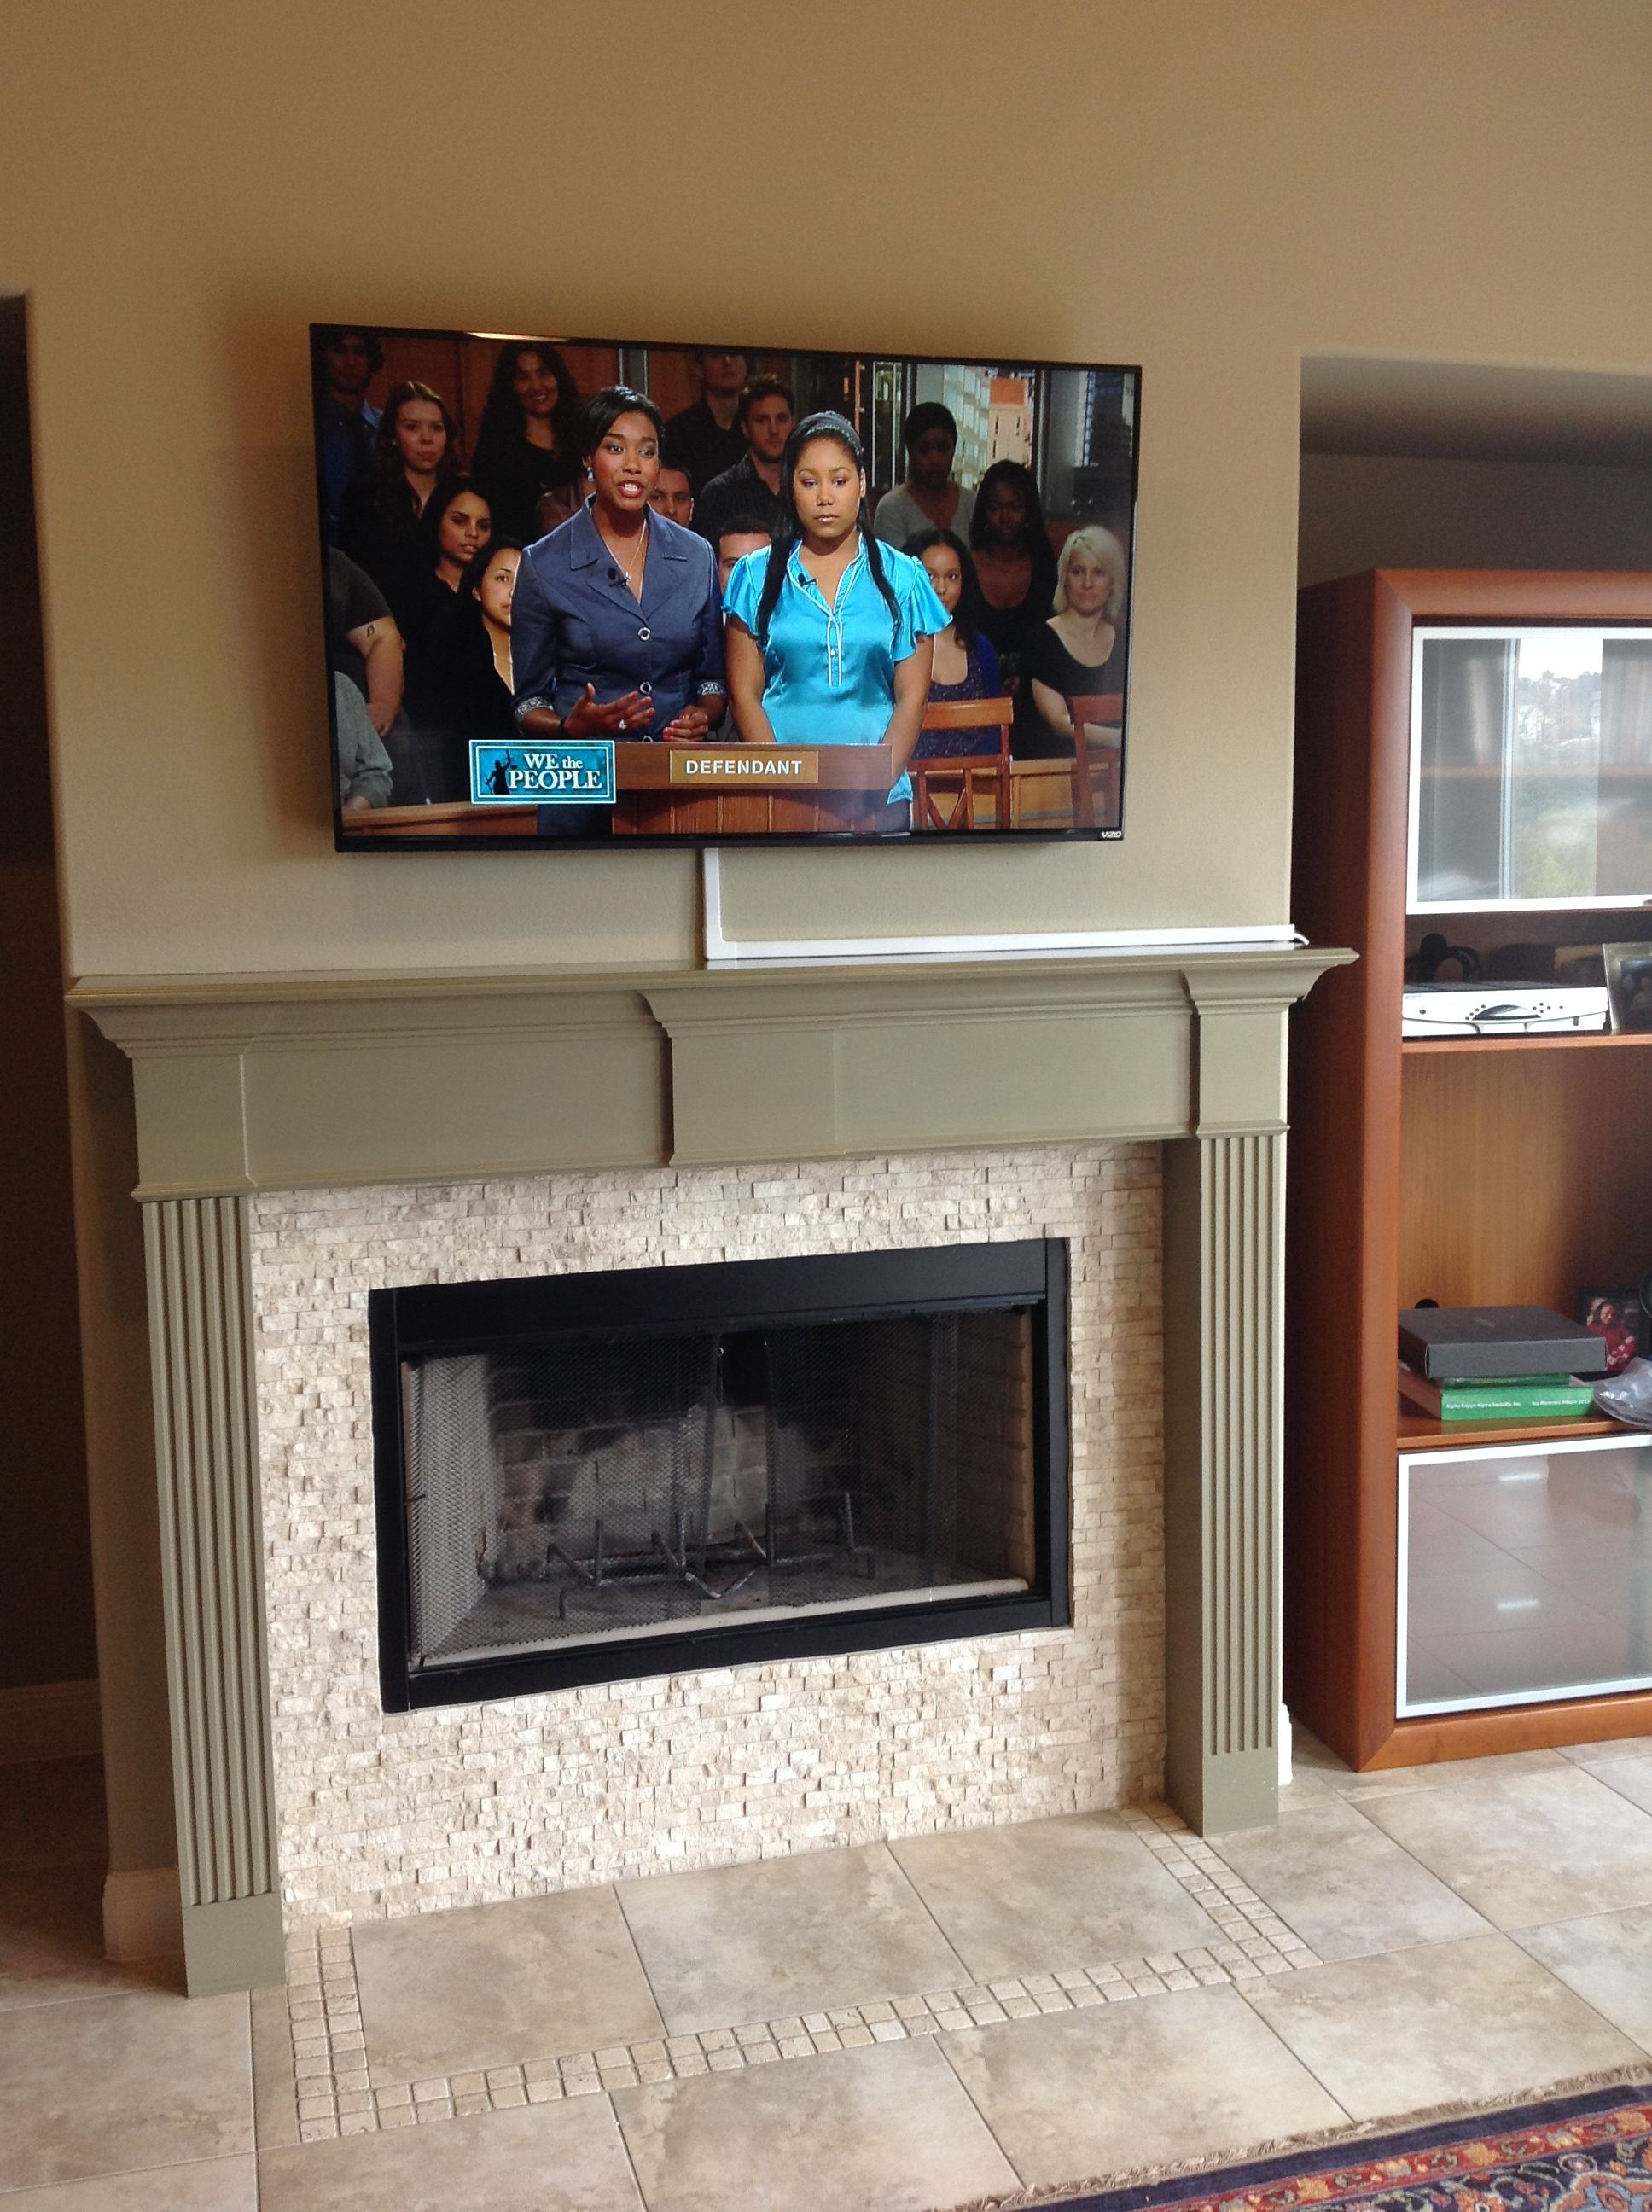 small resolution of wiring tv above fireplace wiring diagram papertv mounting over a fireplace with wires concealed in wire